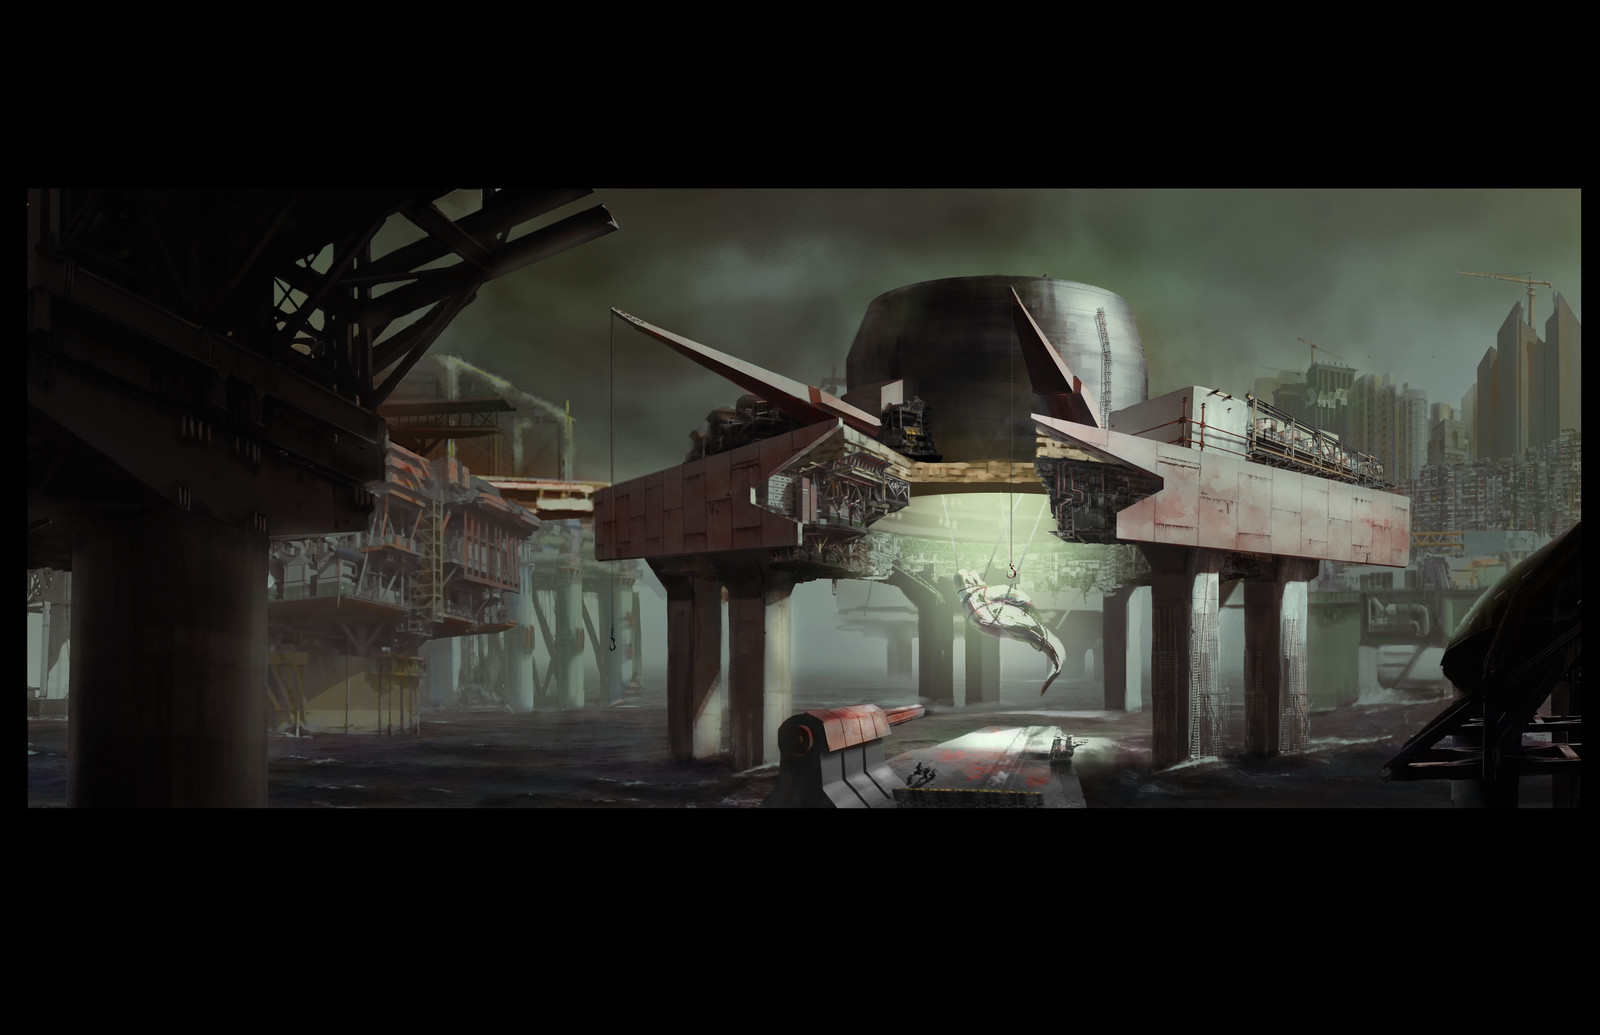 Moby Dick Environment Reversal Concept - Whale Processing Platform